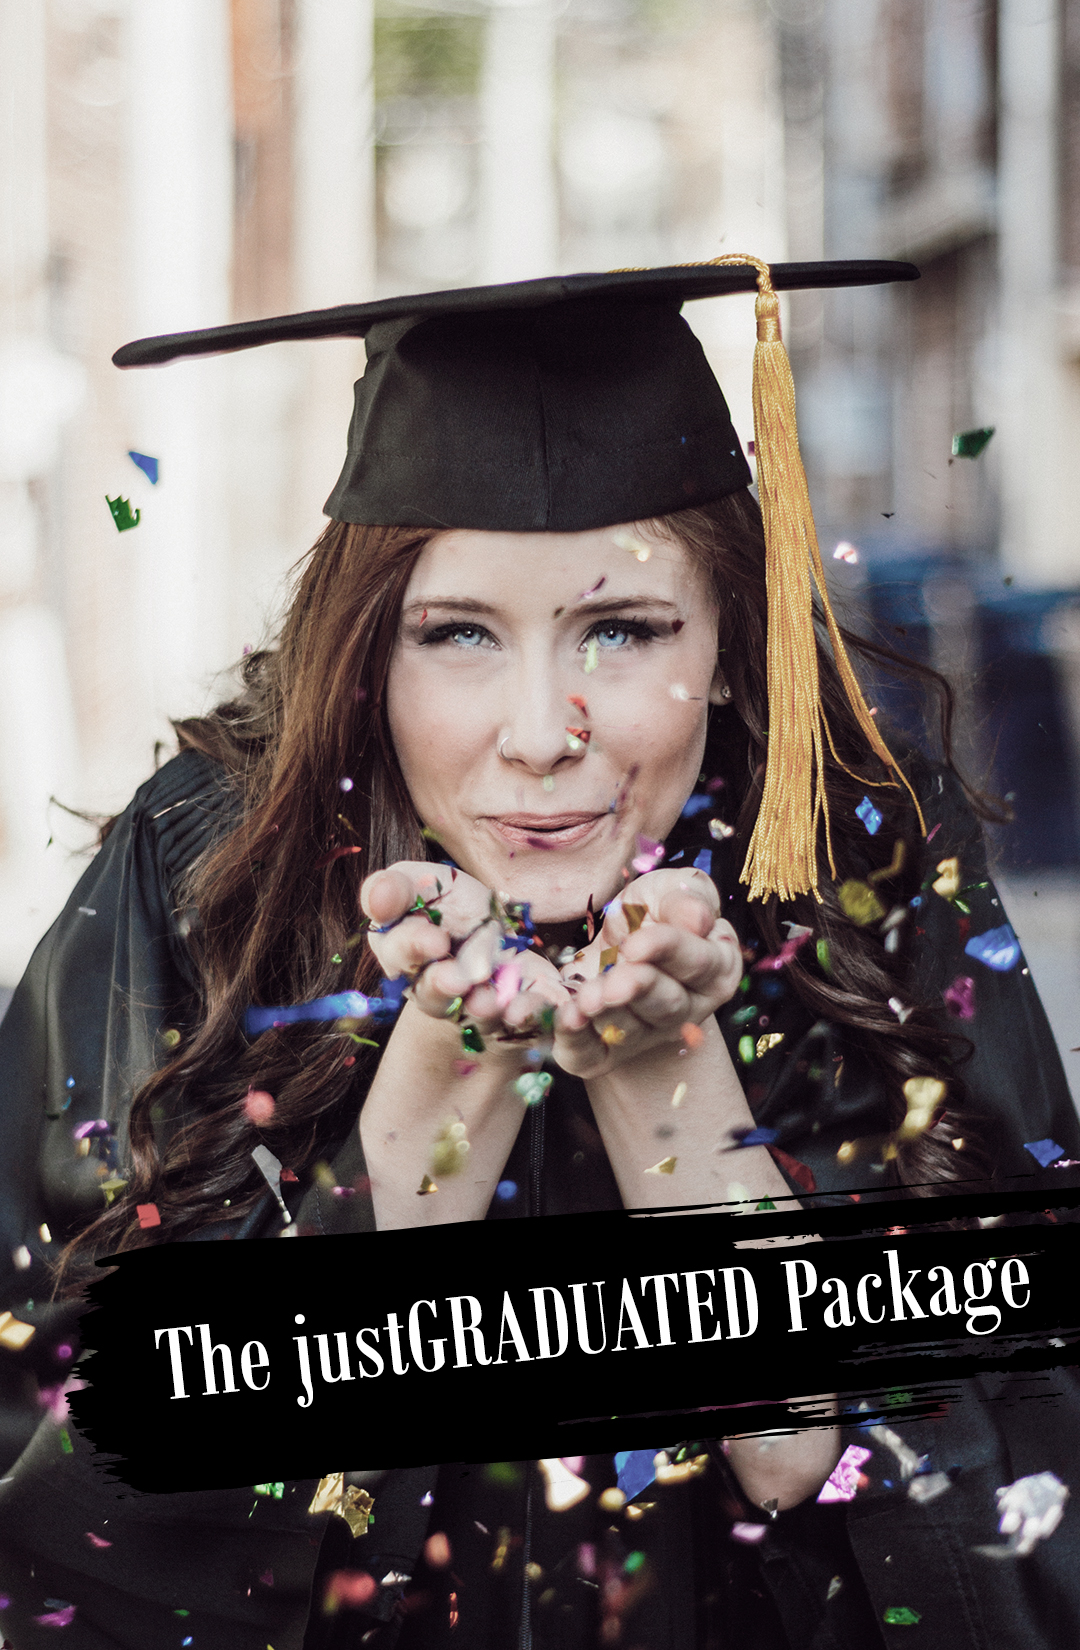 The justGRADUATED Package.jpg